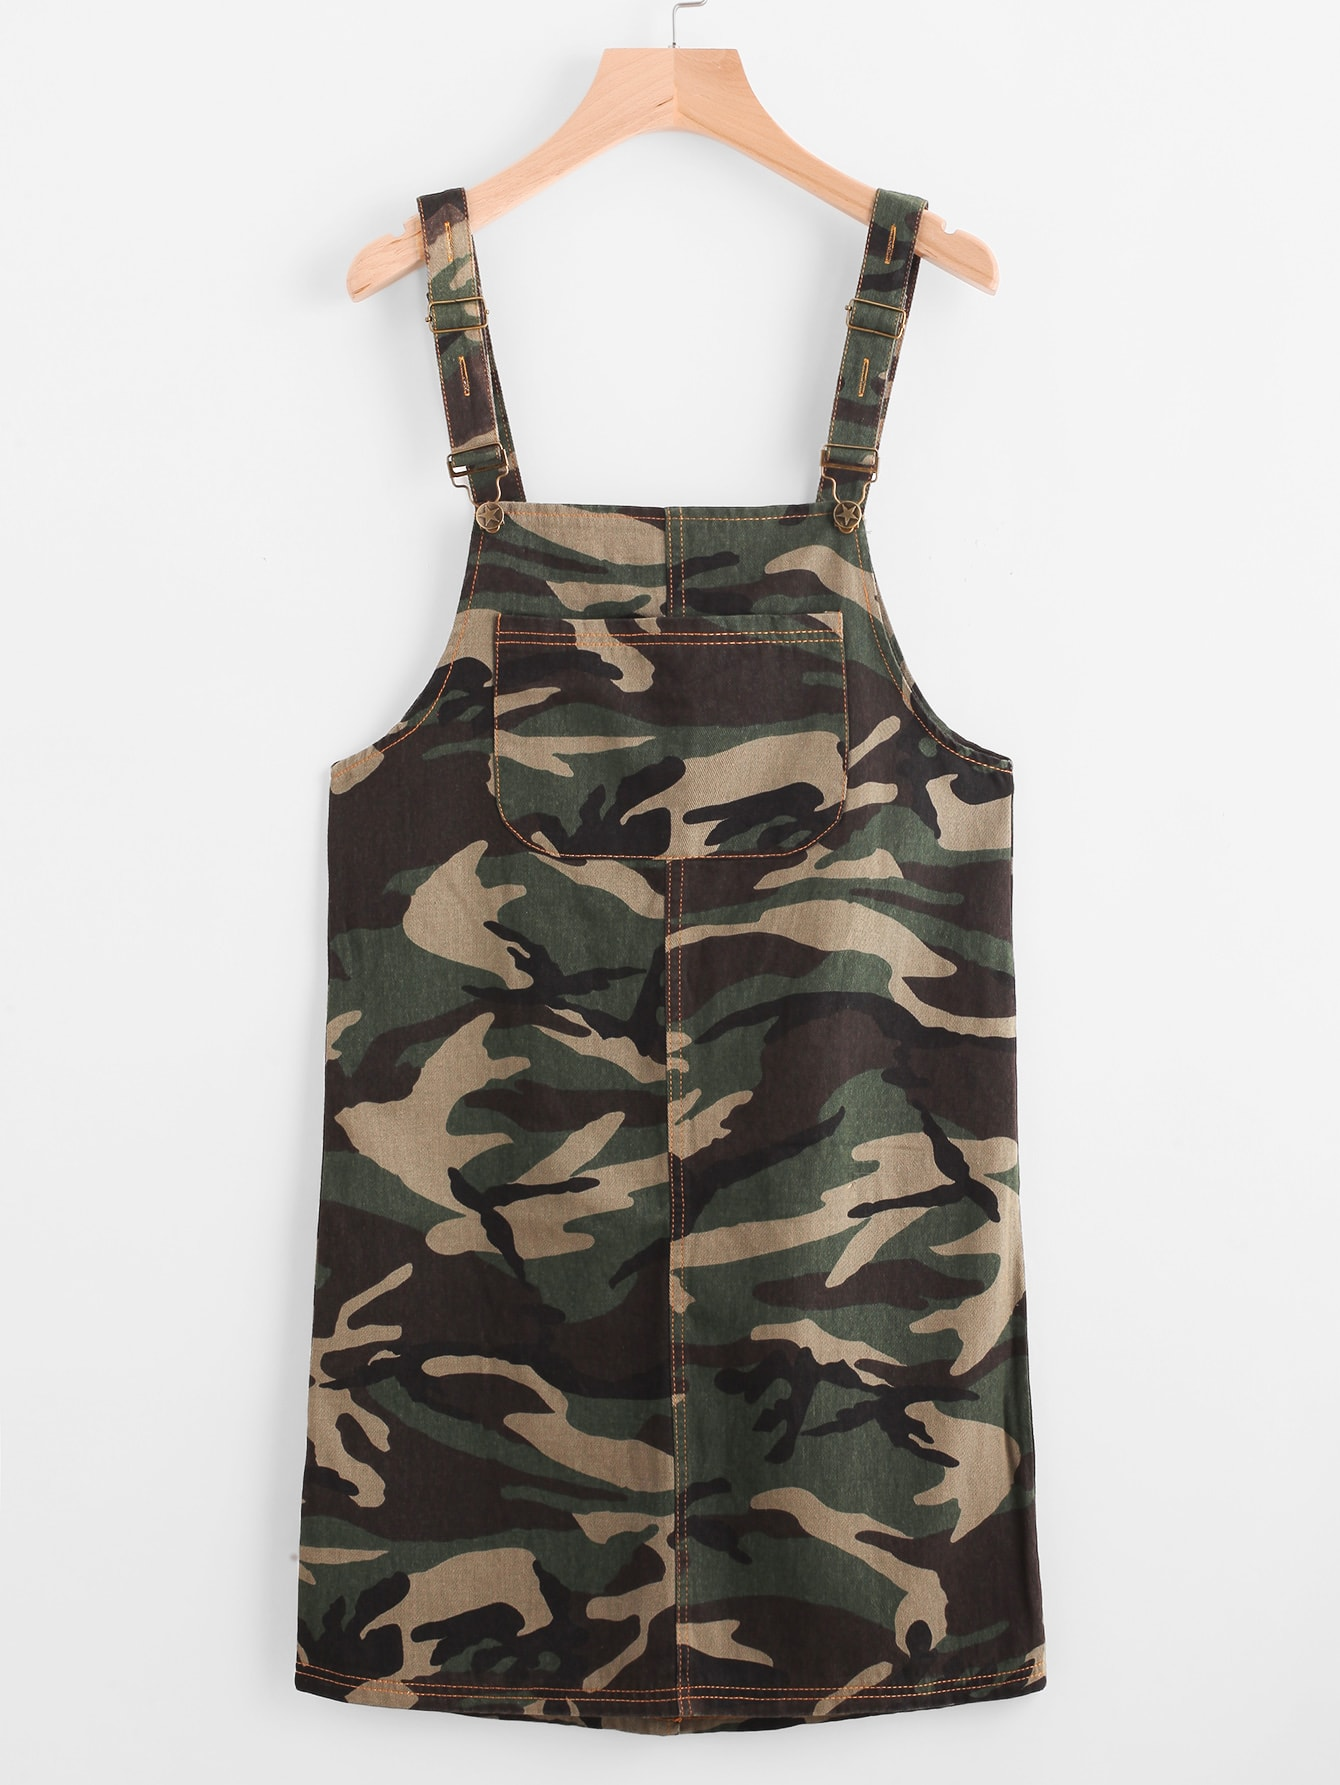 Camouflage Print Overall Dress With Pockets dress170419101